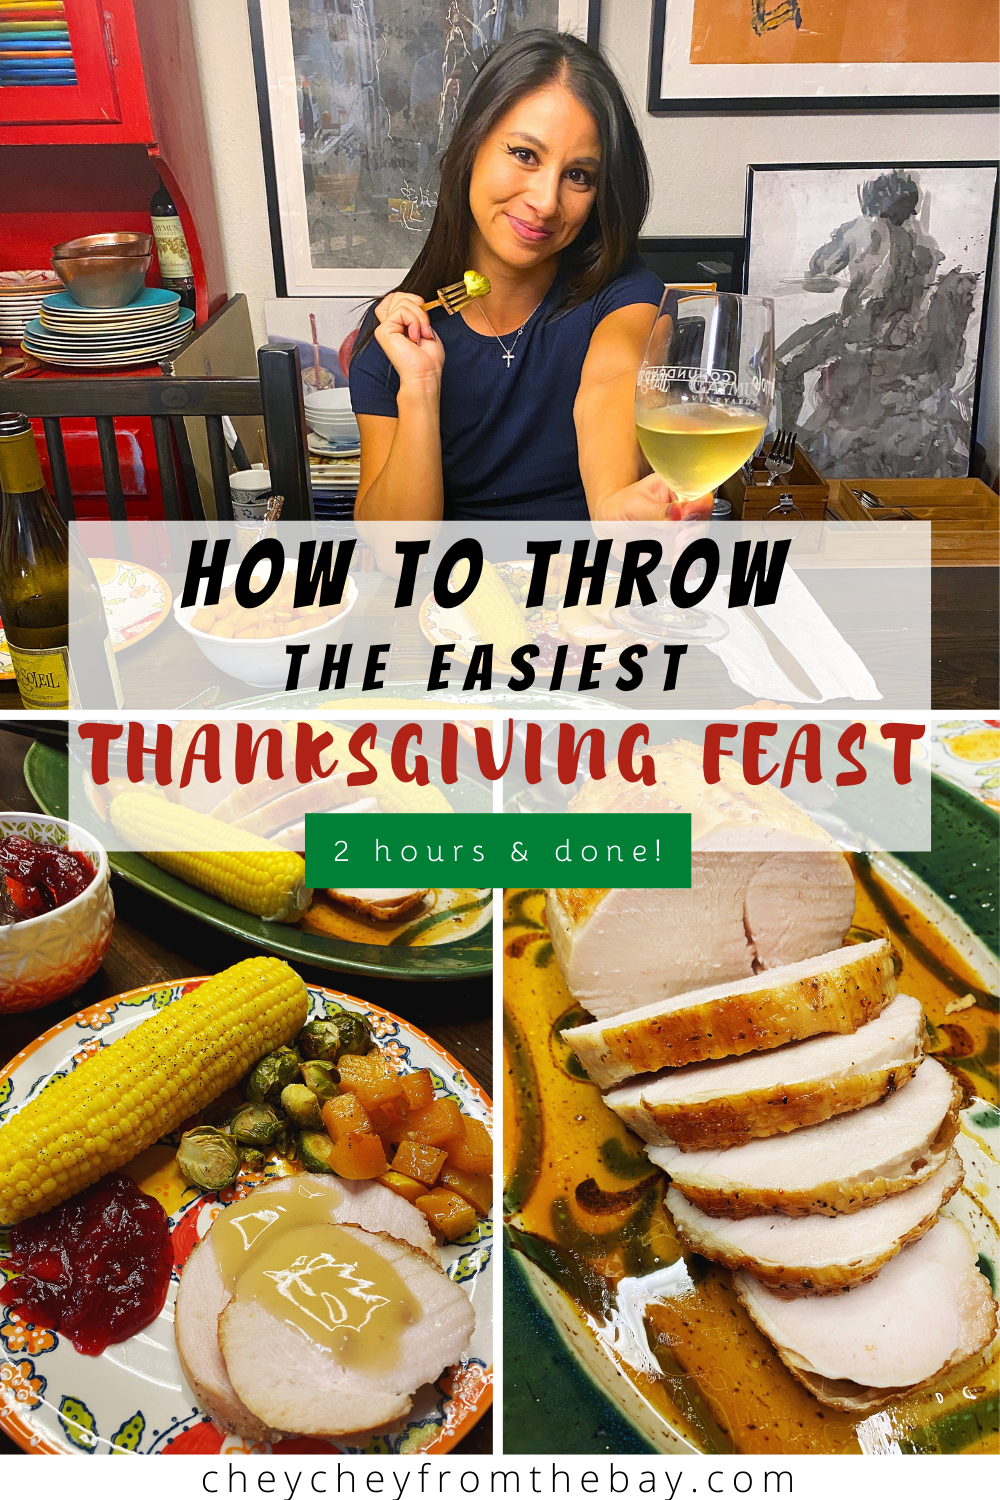 How To Throw The Easiest Thanksgiving Feast